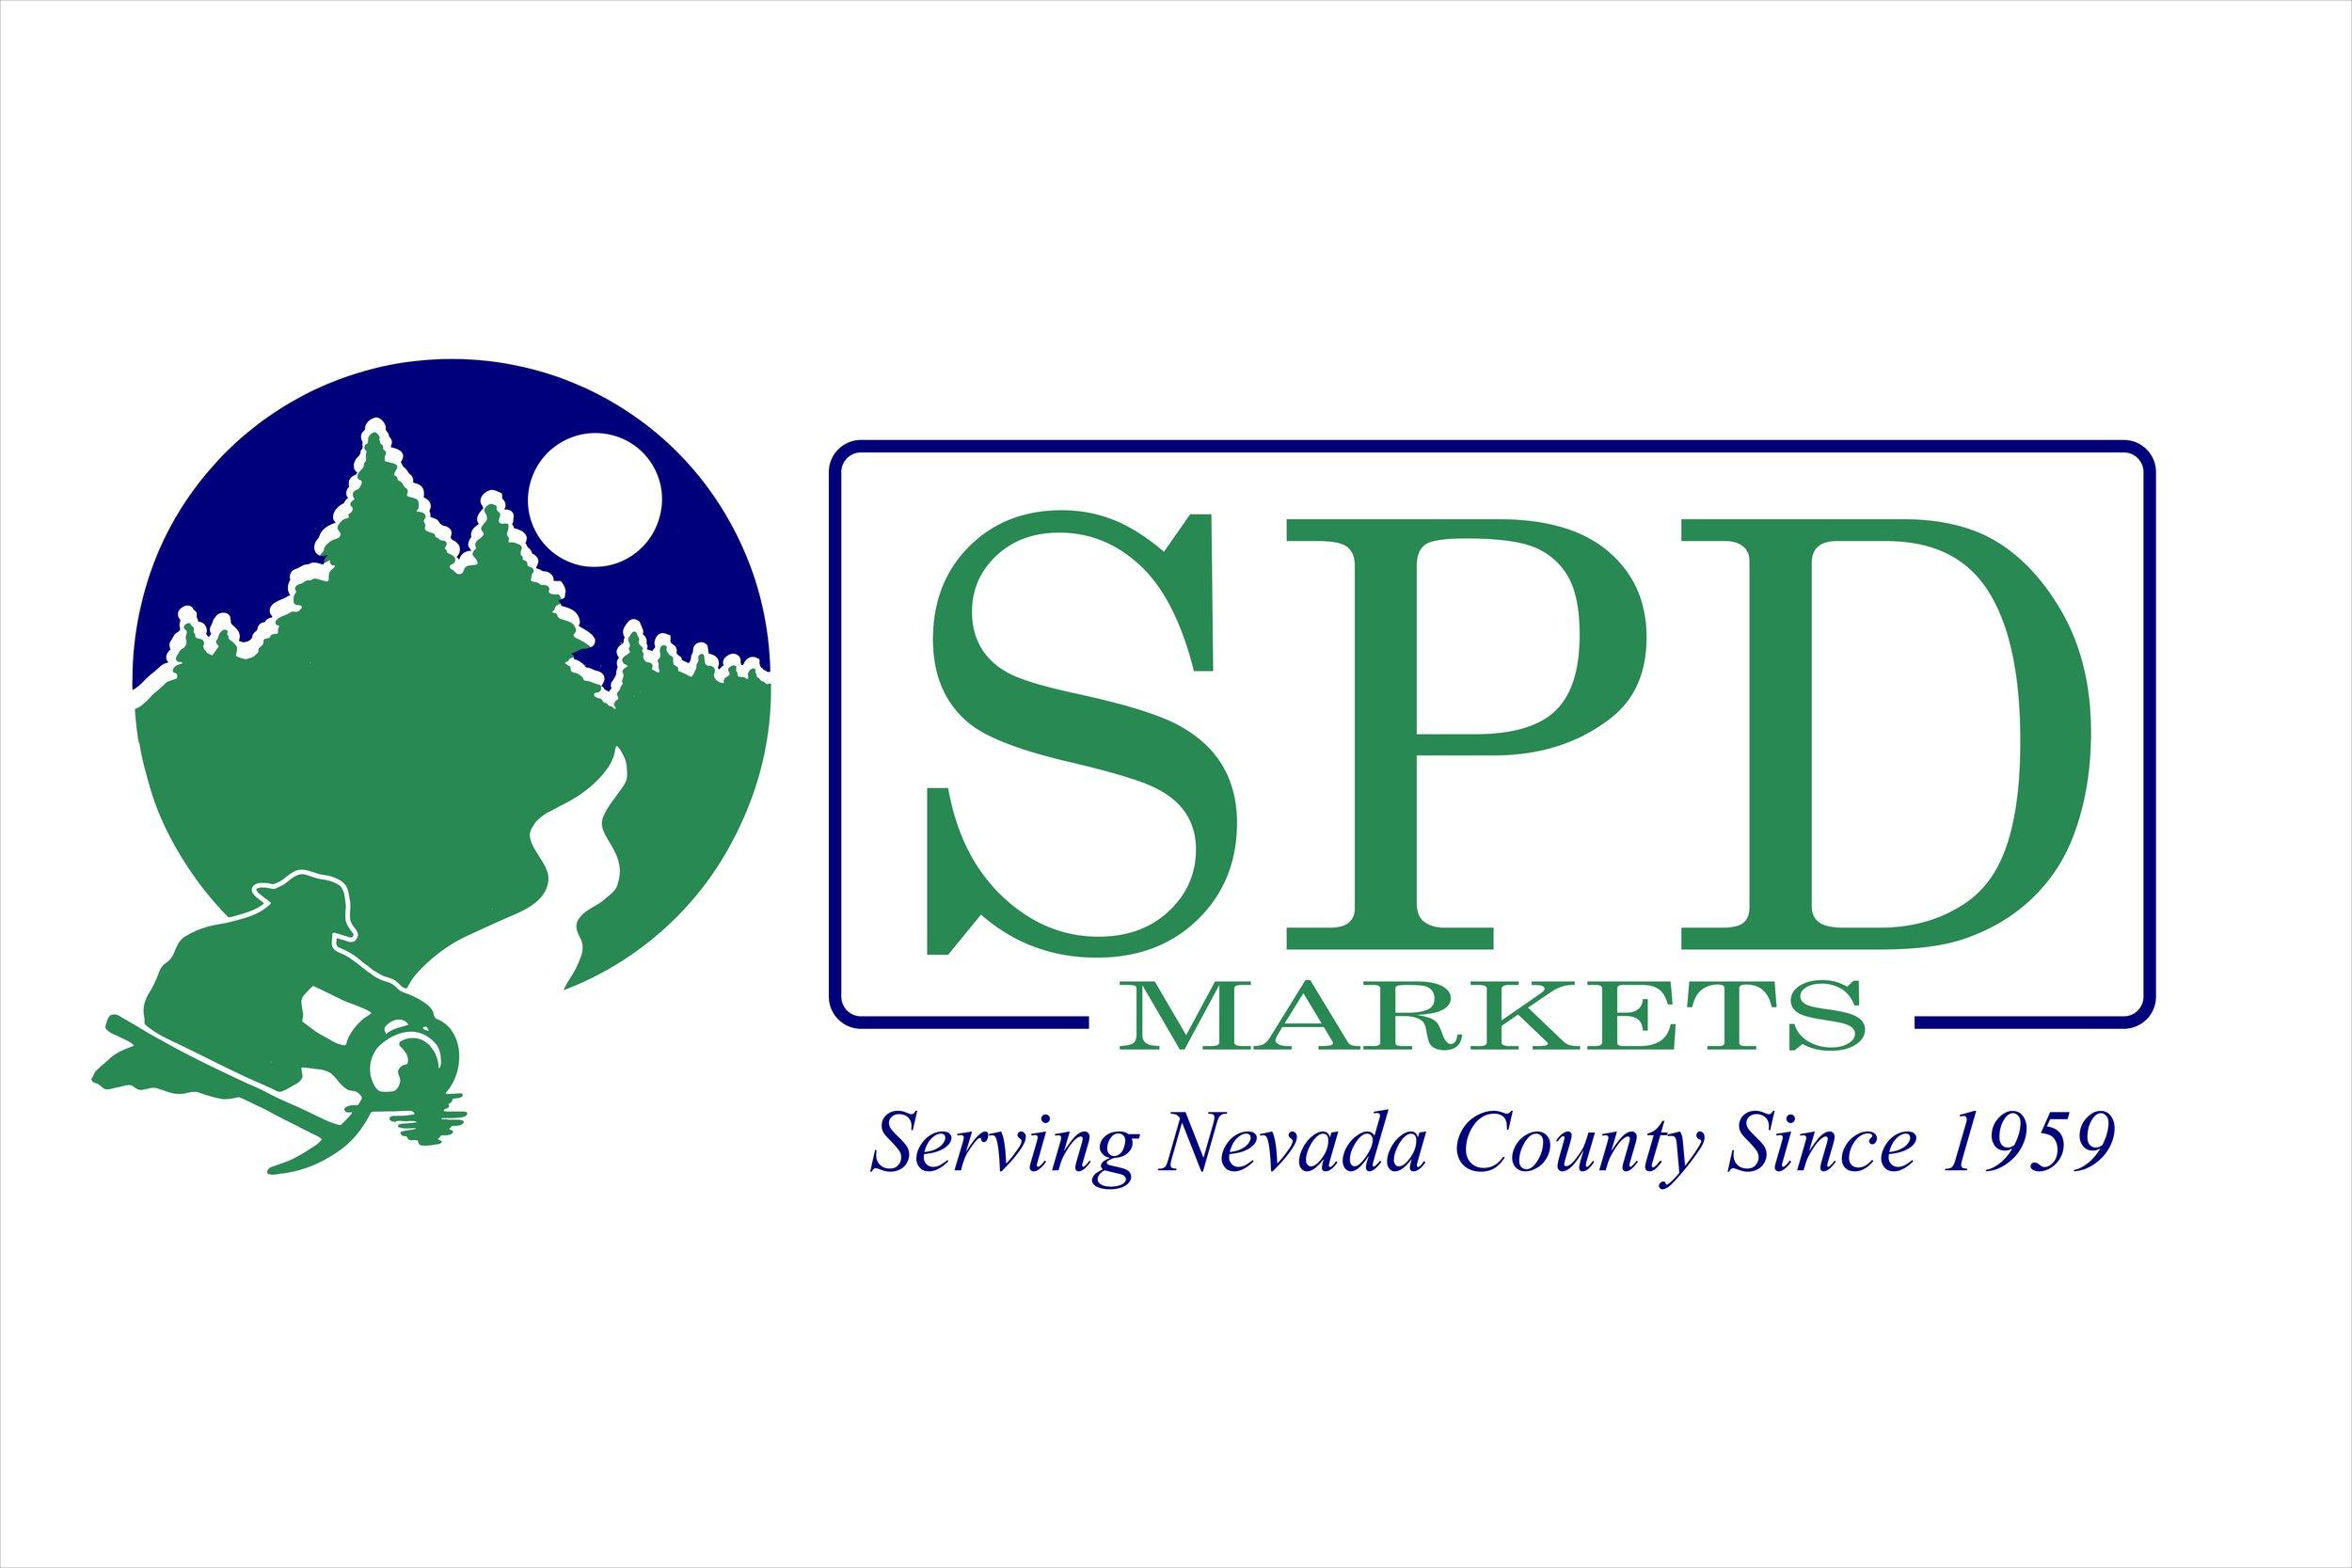 """Our biggest fundraiser for the community is our eScrip program that returns 3% of customer purchases to the nonprofit of their choice. Since the program started, we have raised close to $1.25 million for the local community nonprofits.""  —SPD Manager Dave Painter, Nevada City Advocate July 2019"